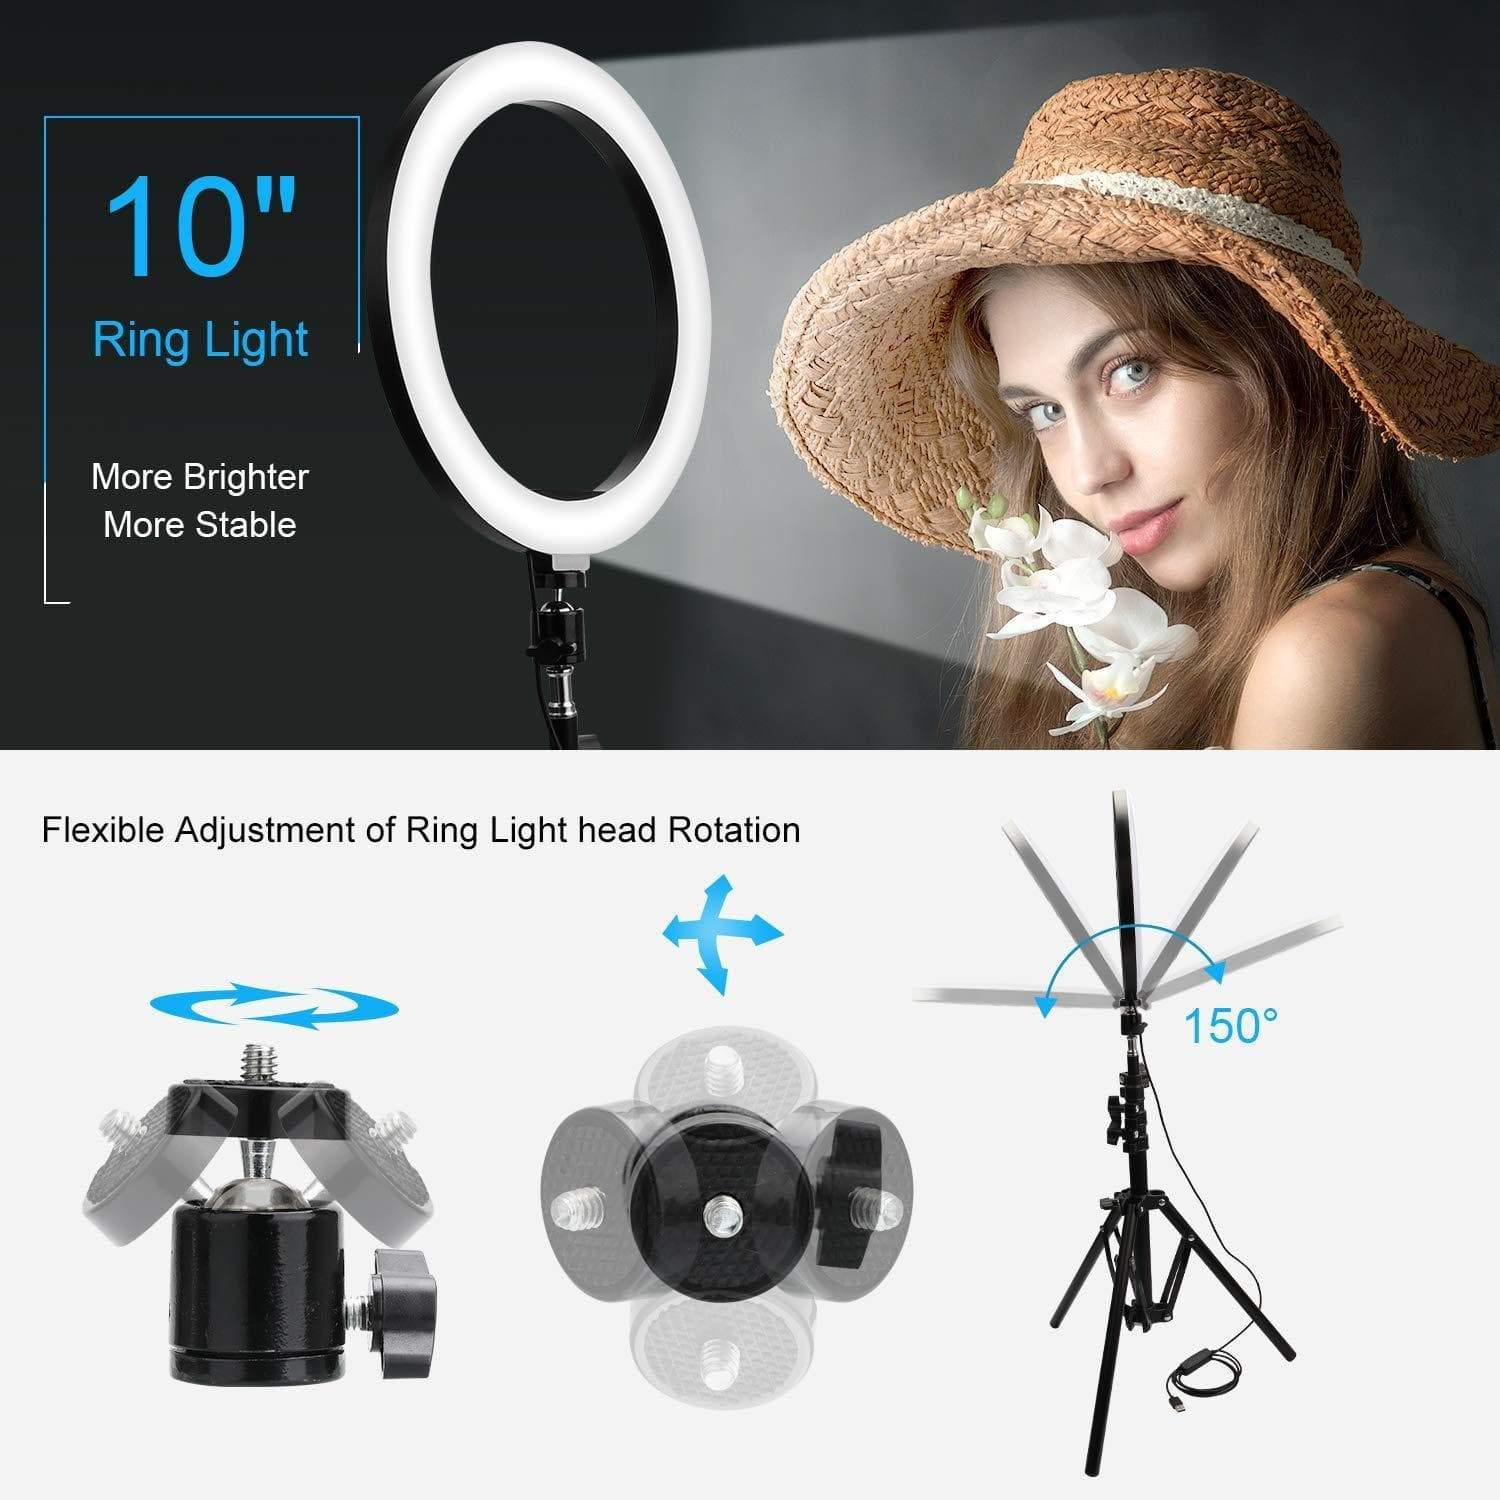 Qkiss LED Selfie Ring Light Dimmable Photography Video Live Lighting Make Up Light US-Green